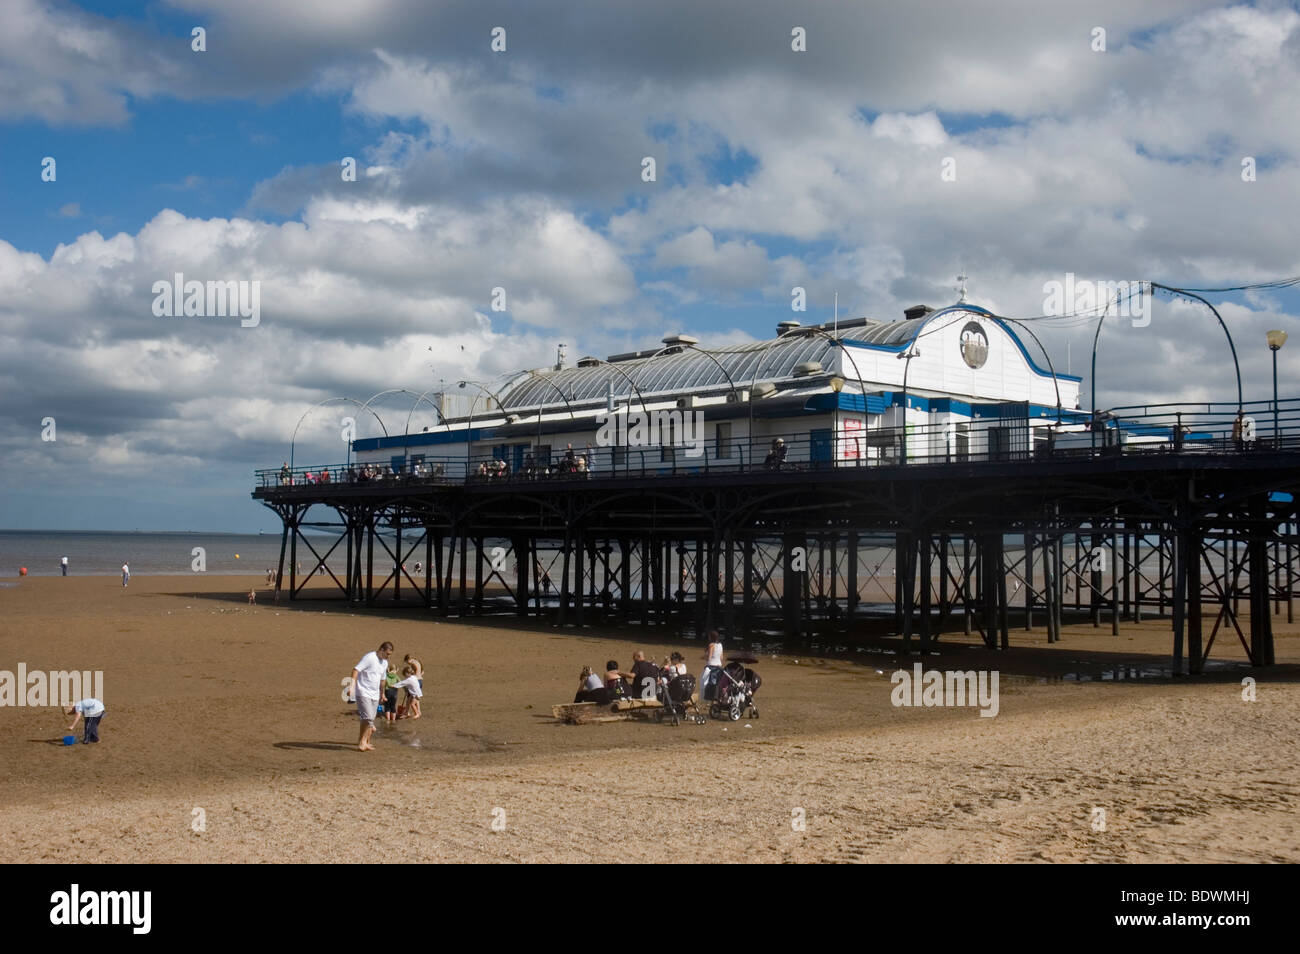 People on the beach near Cleethorpes Pier at low tide - Stock Image